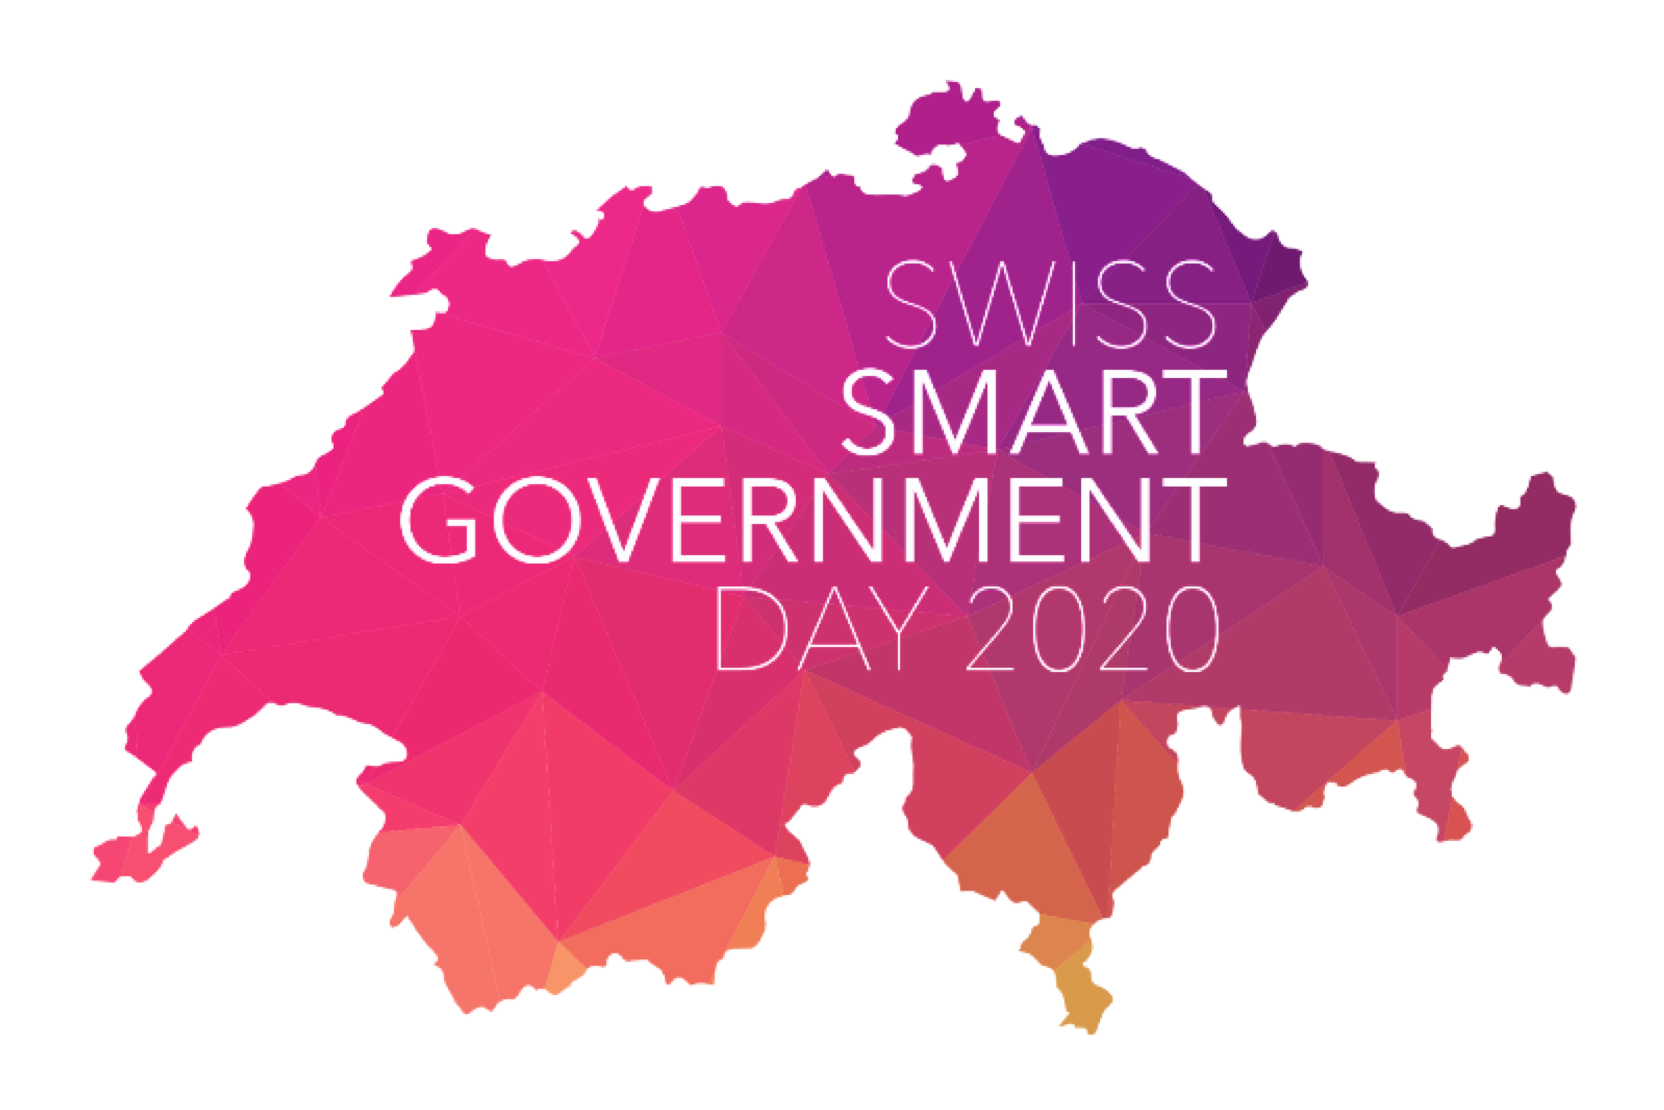 Swiss Smart Government Day 2020